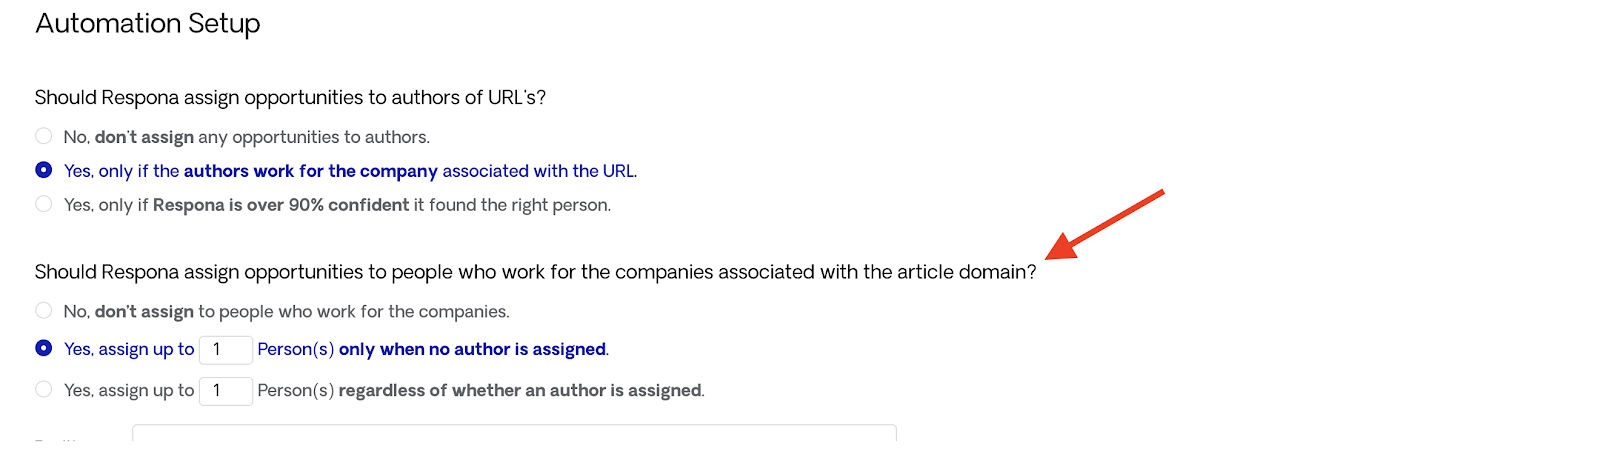 Assign Opportunities to People Who Work for the Companies Associated With the URL